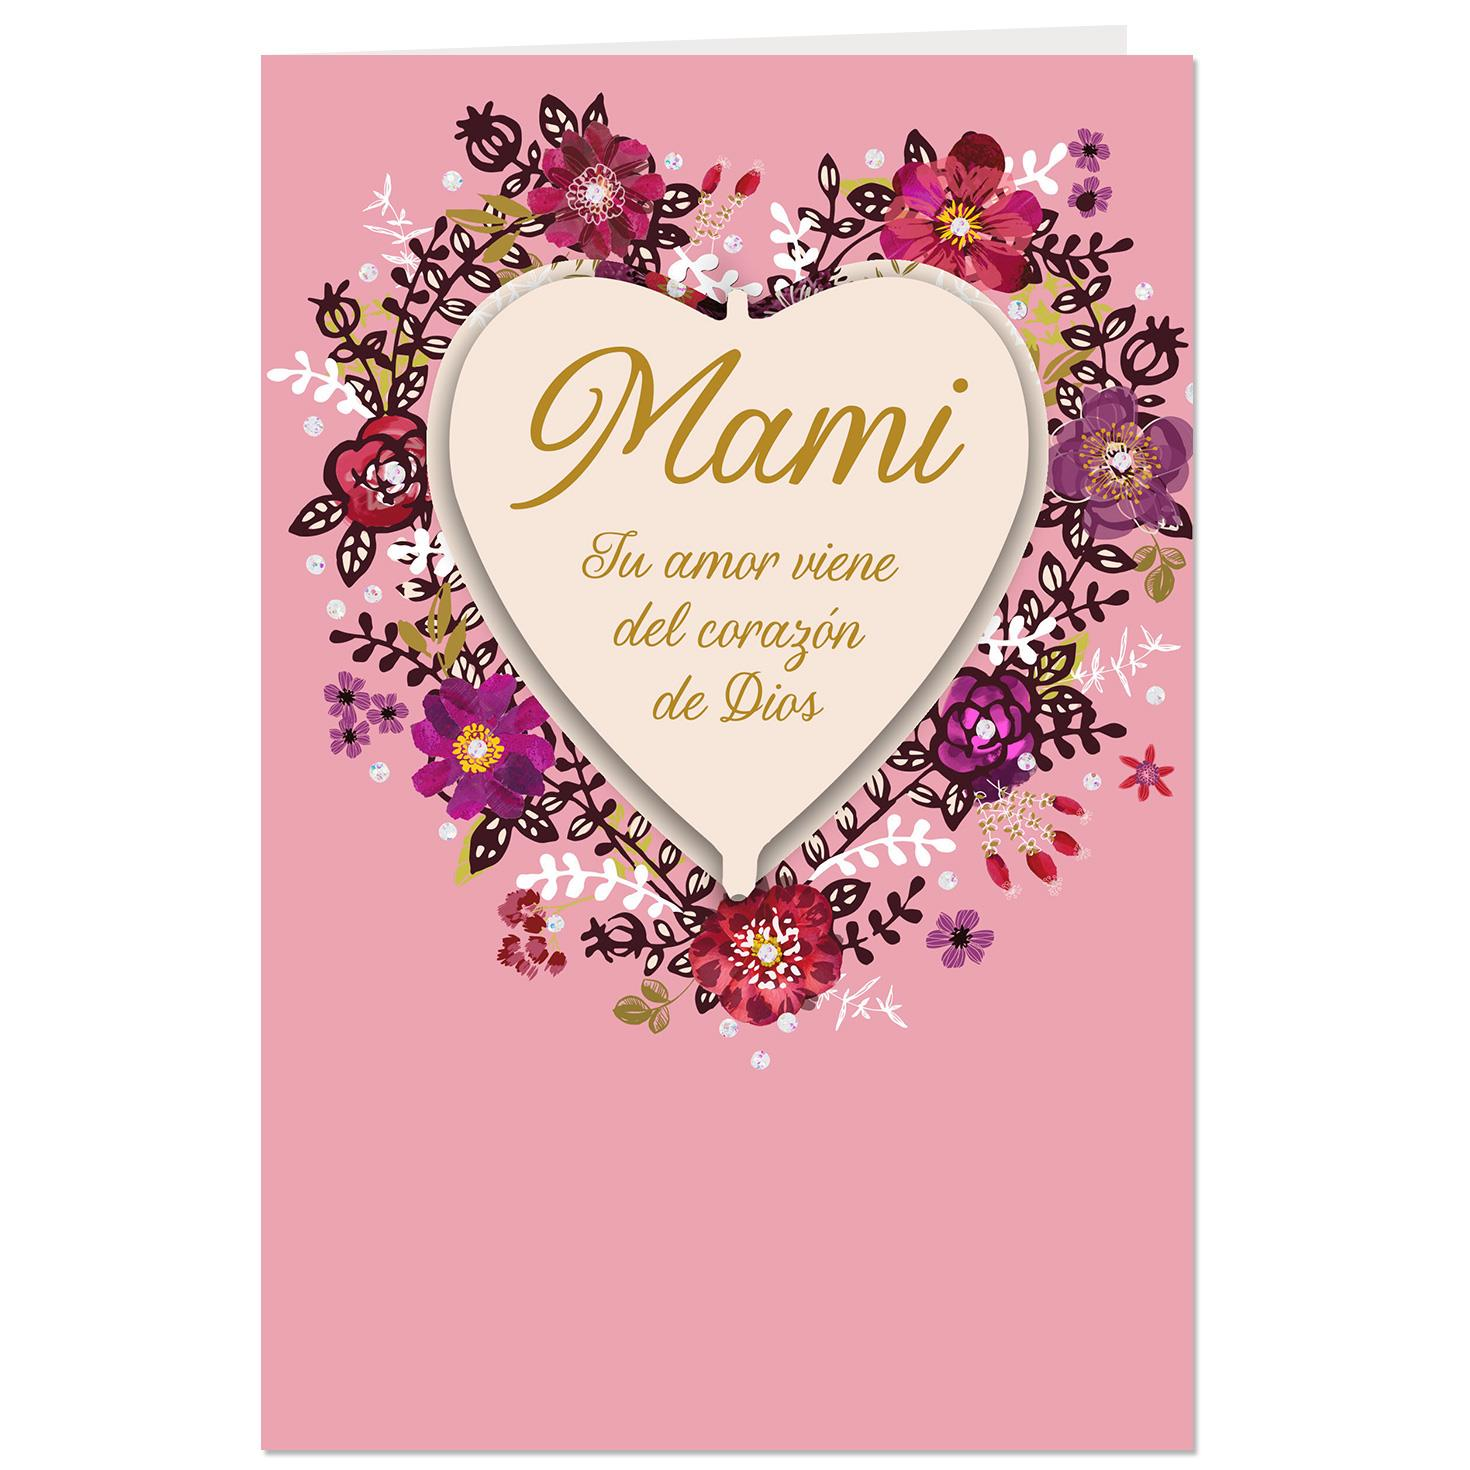 Creative Thank You My Love Spanish Thank You Spanishlanguage Valentines Day Card Mom Root 499vas9876 Vas9876 1470 1 Spanish Thank You My Friend inspiration Spanish For Thank You